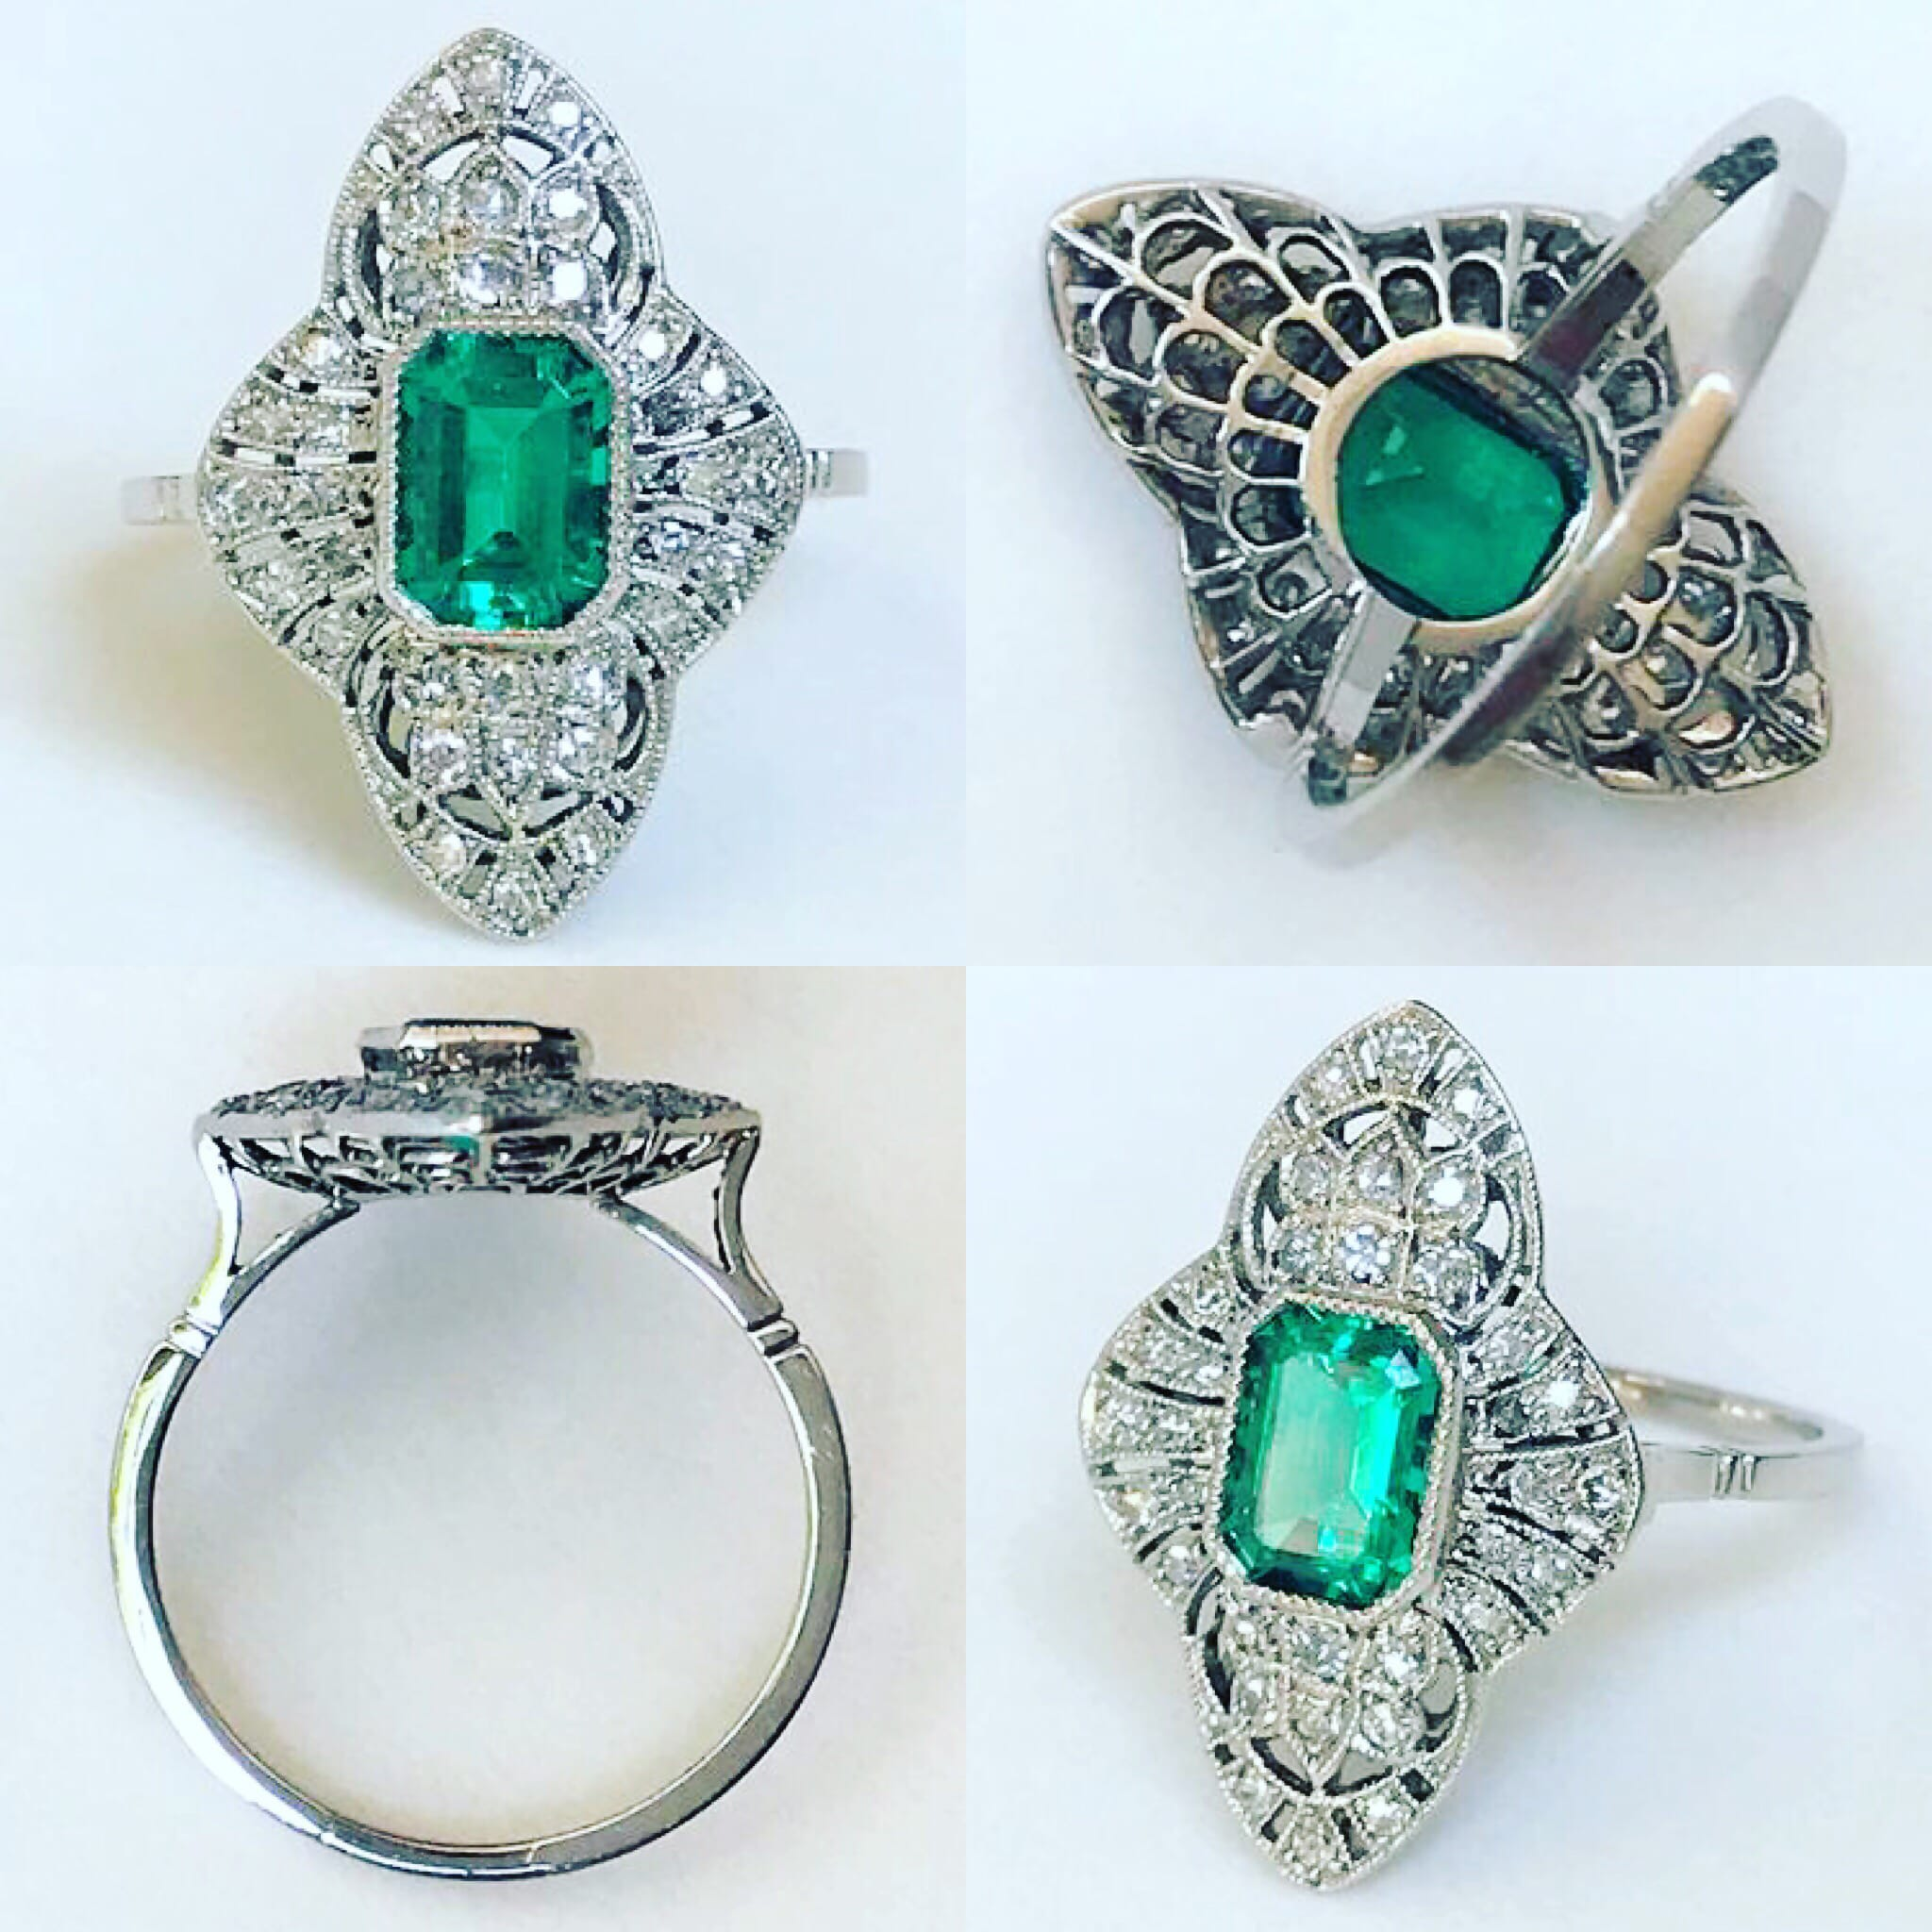 Art Deco Style Vintage Platinum Emerald and Diamond Ring